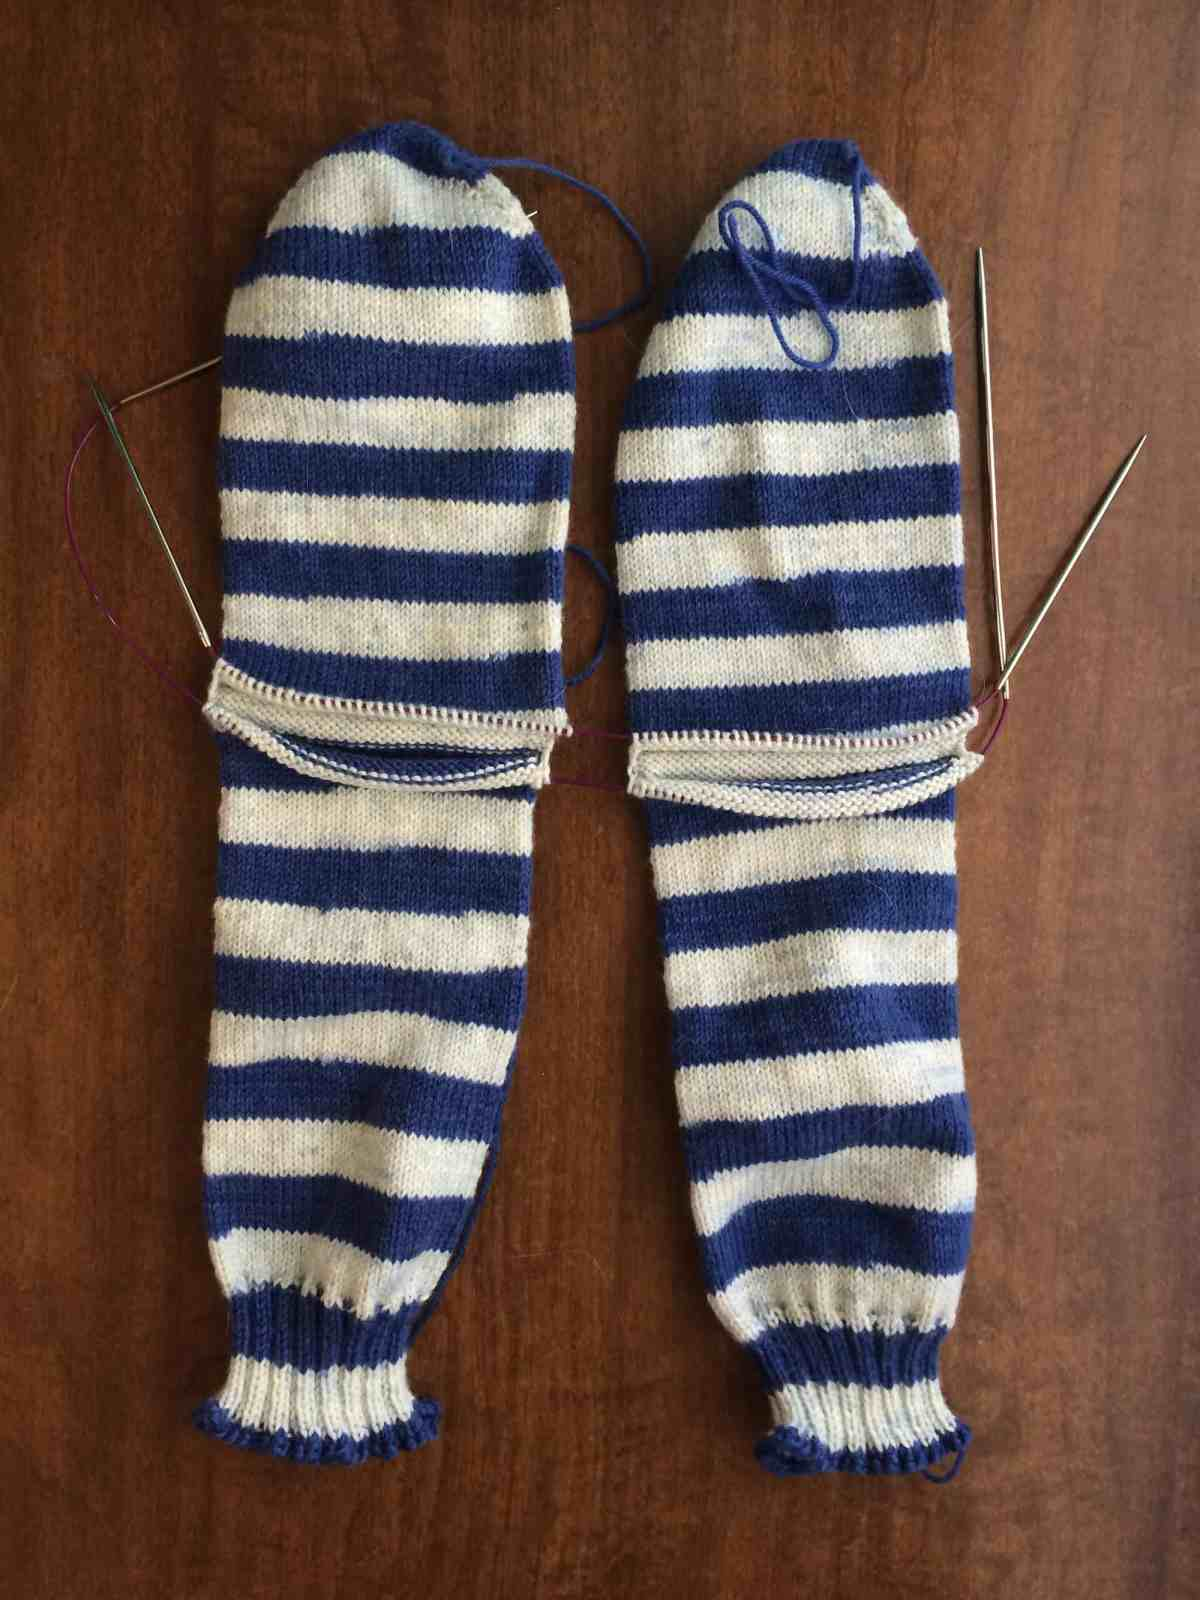 Plain Vanilla Socks, Toe Up Two at a Time on Two Circulars with Afterthought Heels